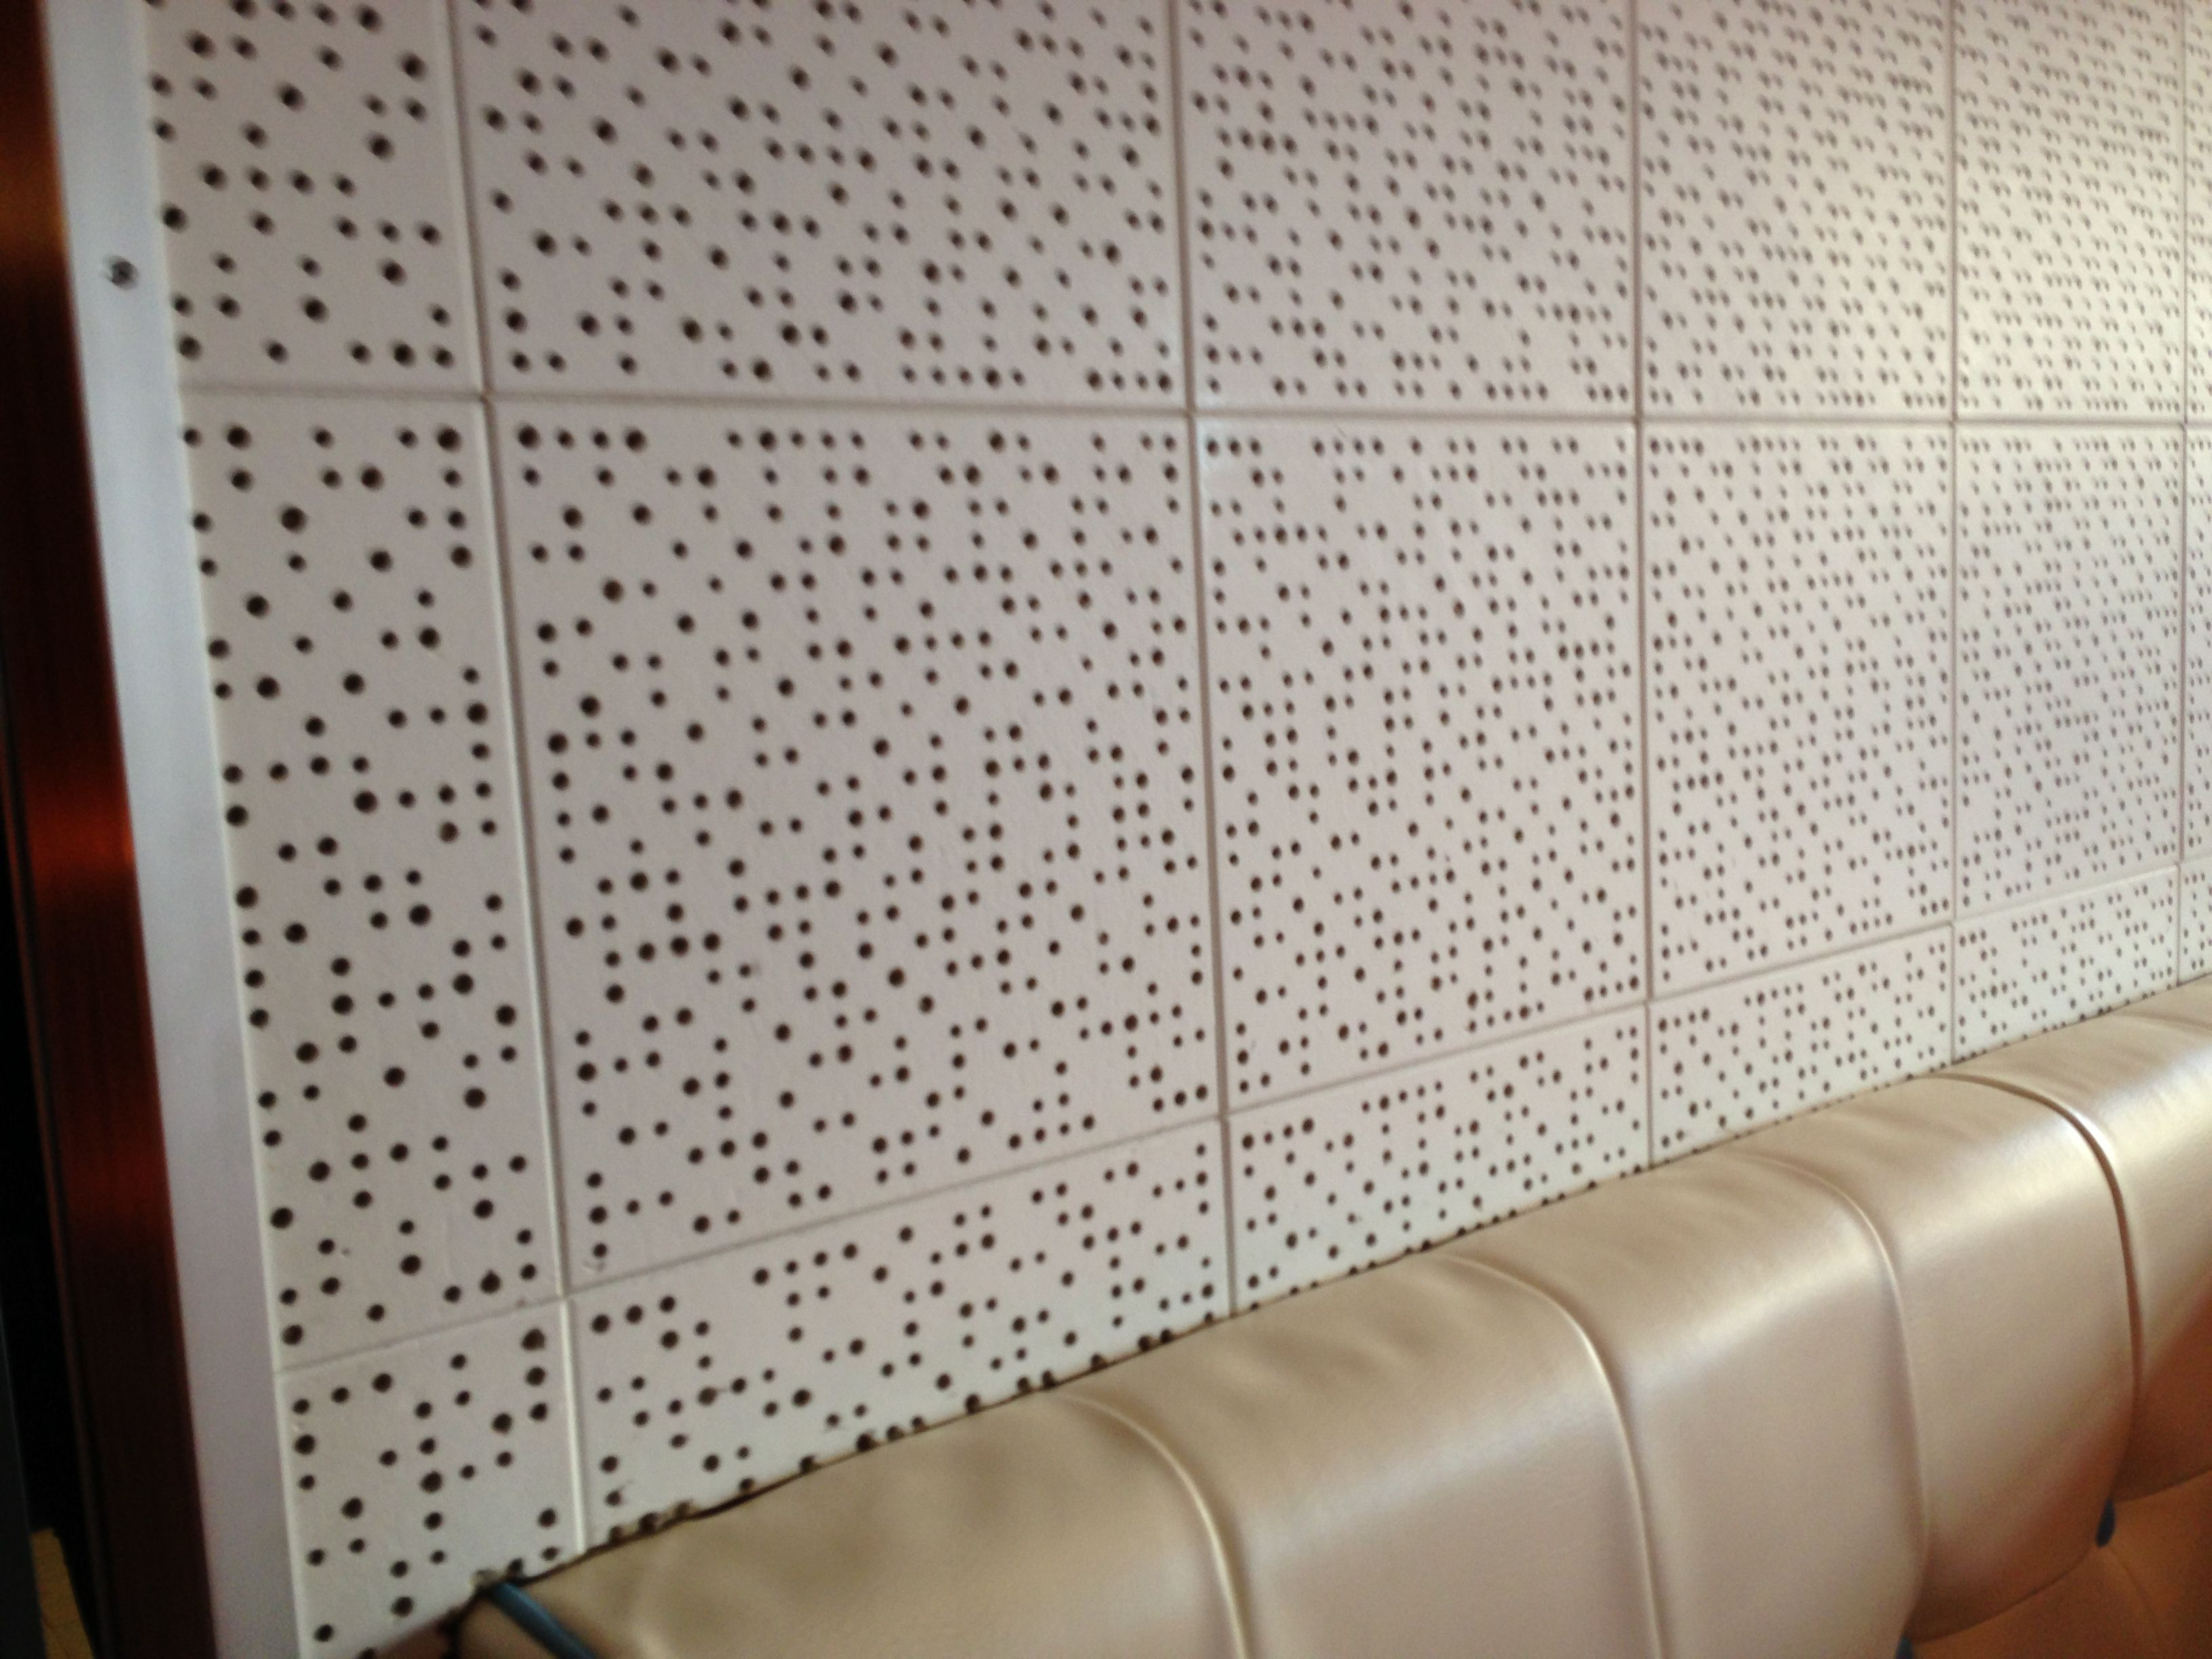 Acousticceiling tiles at Cafeteria Acousticceiling tiles at